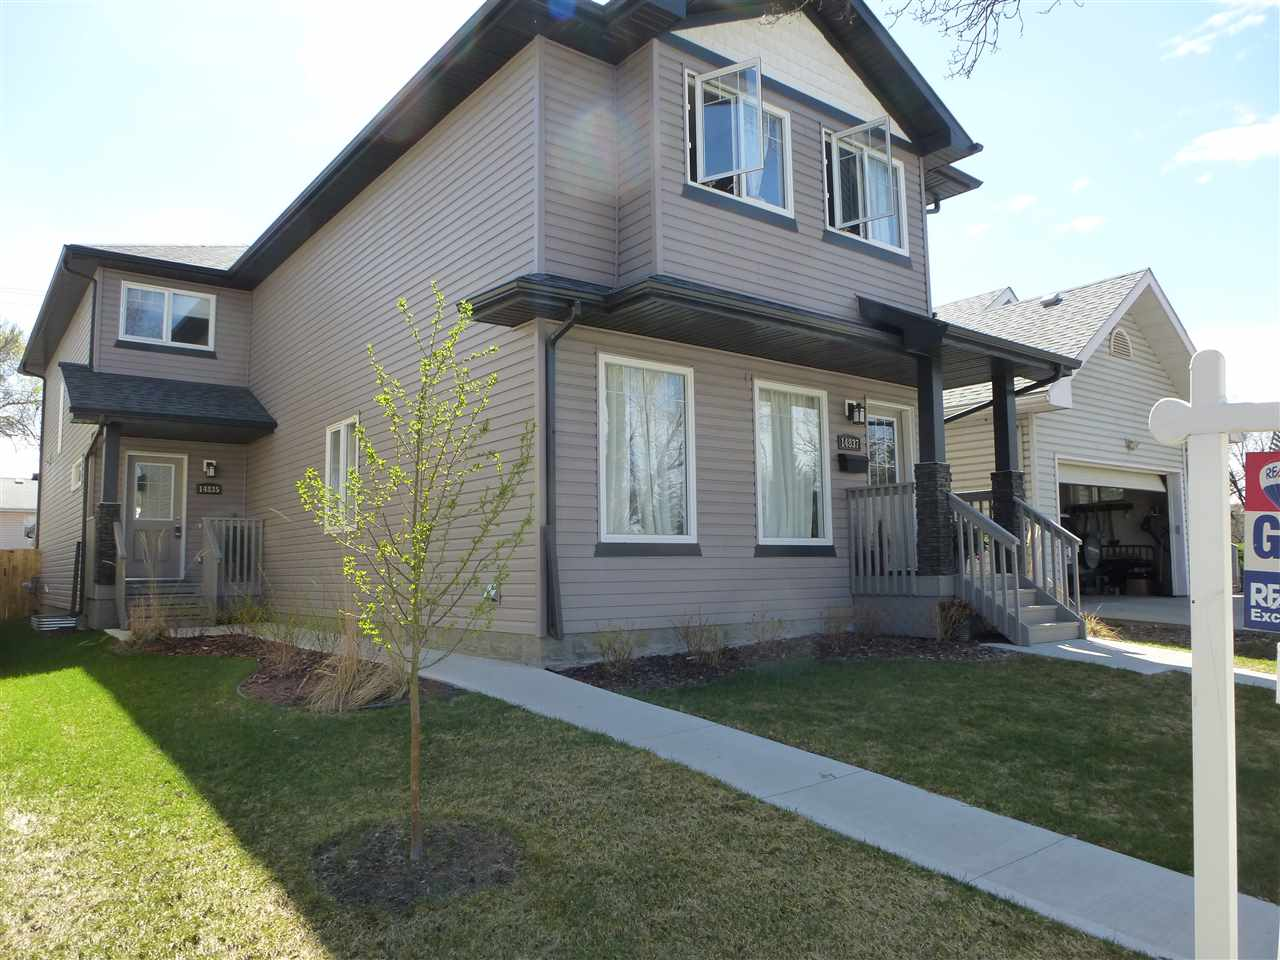 Main Photo: 14835 103 Avenue in Edmonton: Zone 21 House Half Duplex for sale : MLS(r) # E4057701